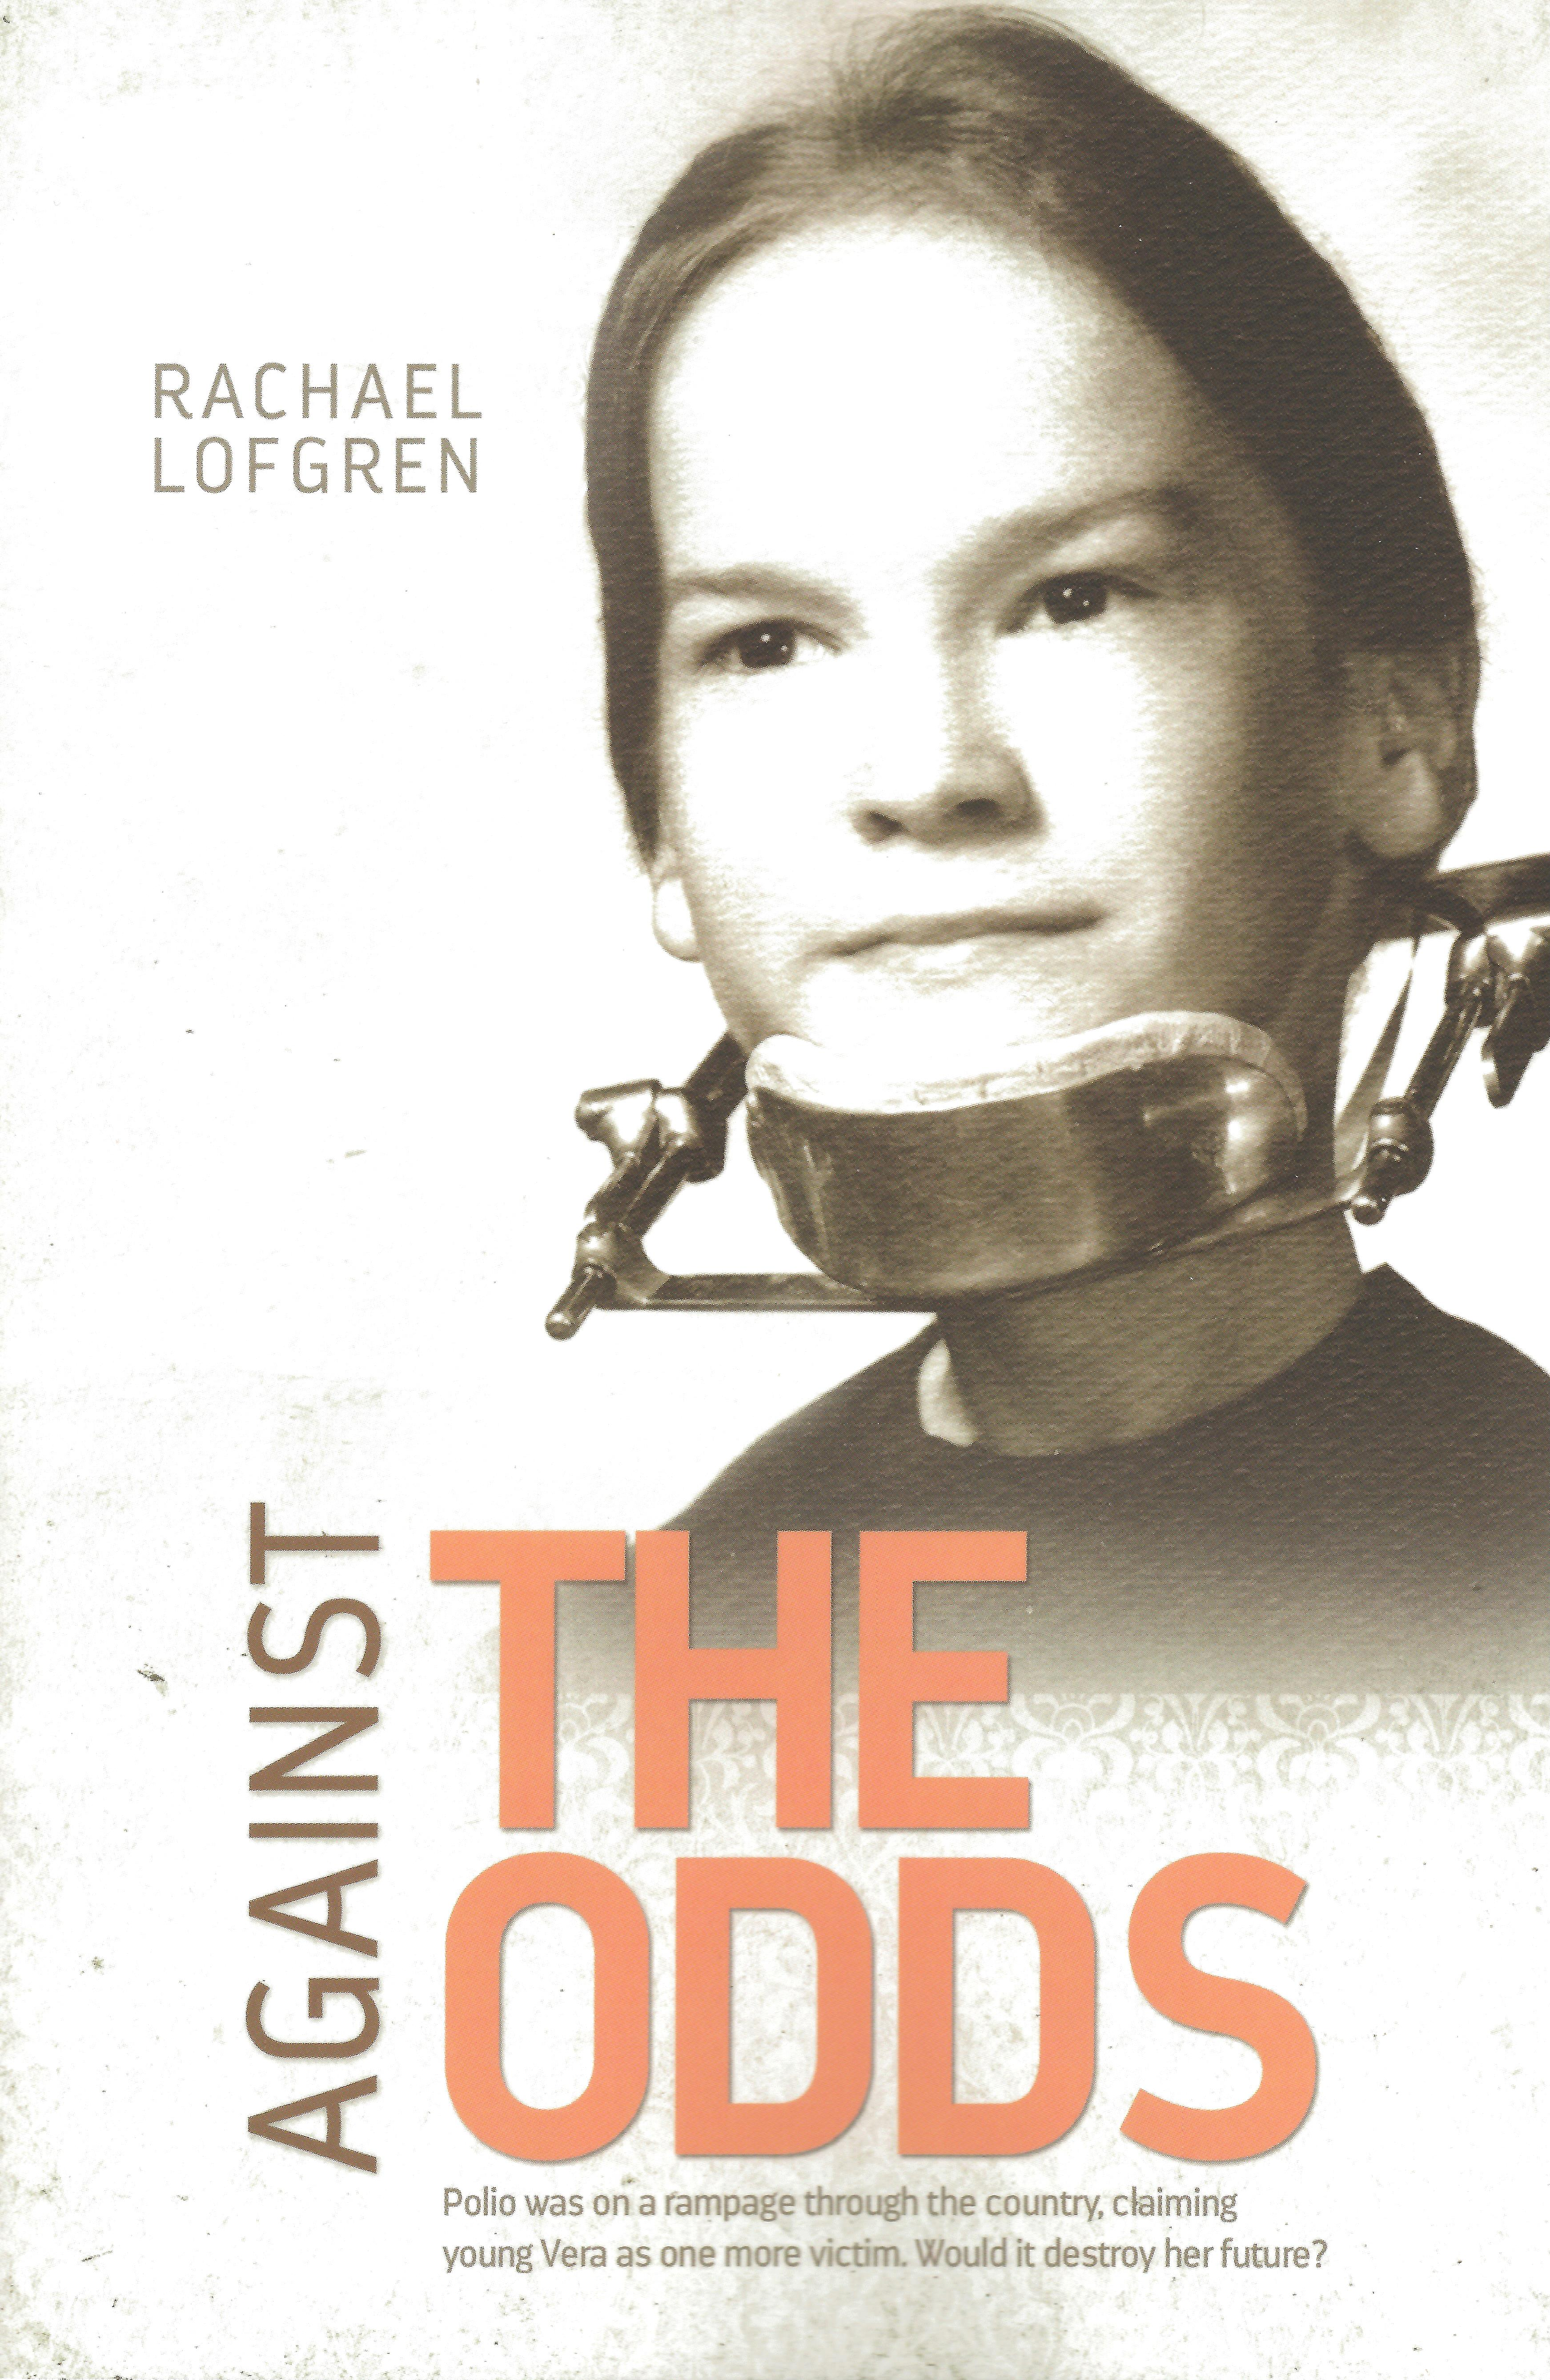 AGAINST THE ODDS | Rachael Lofgren